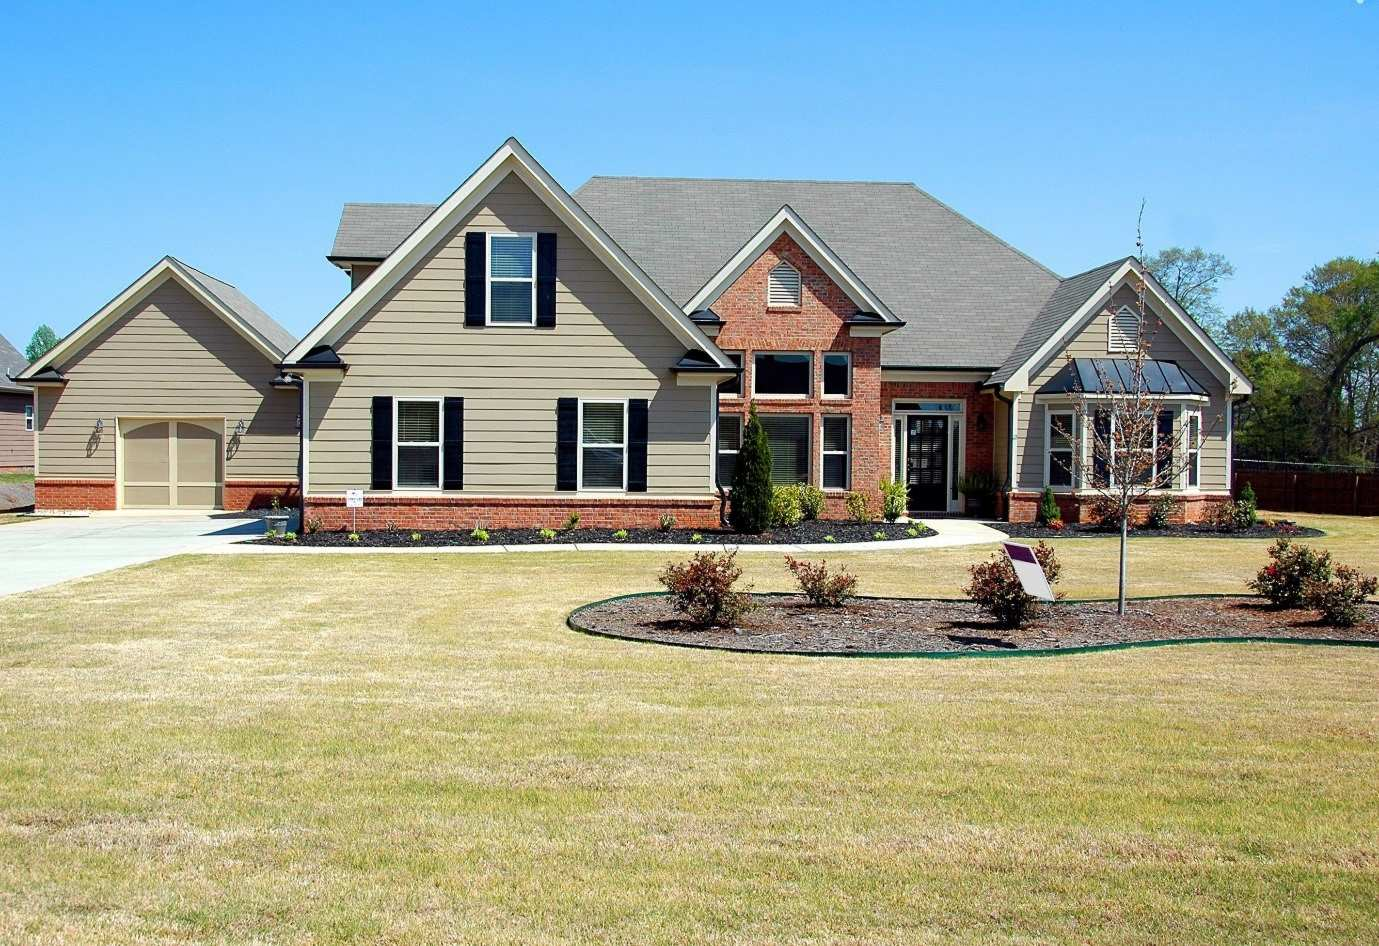 The ultimate guide to preparing your home for sale